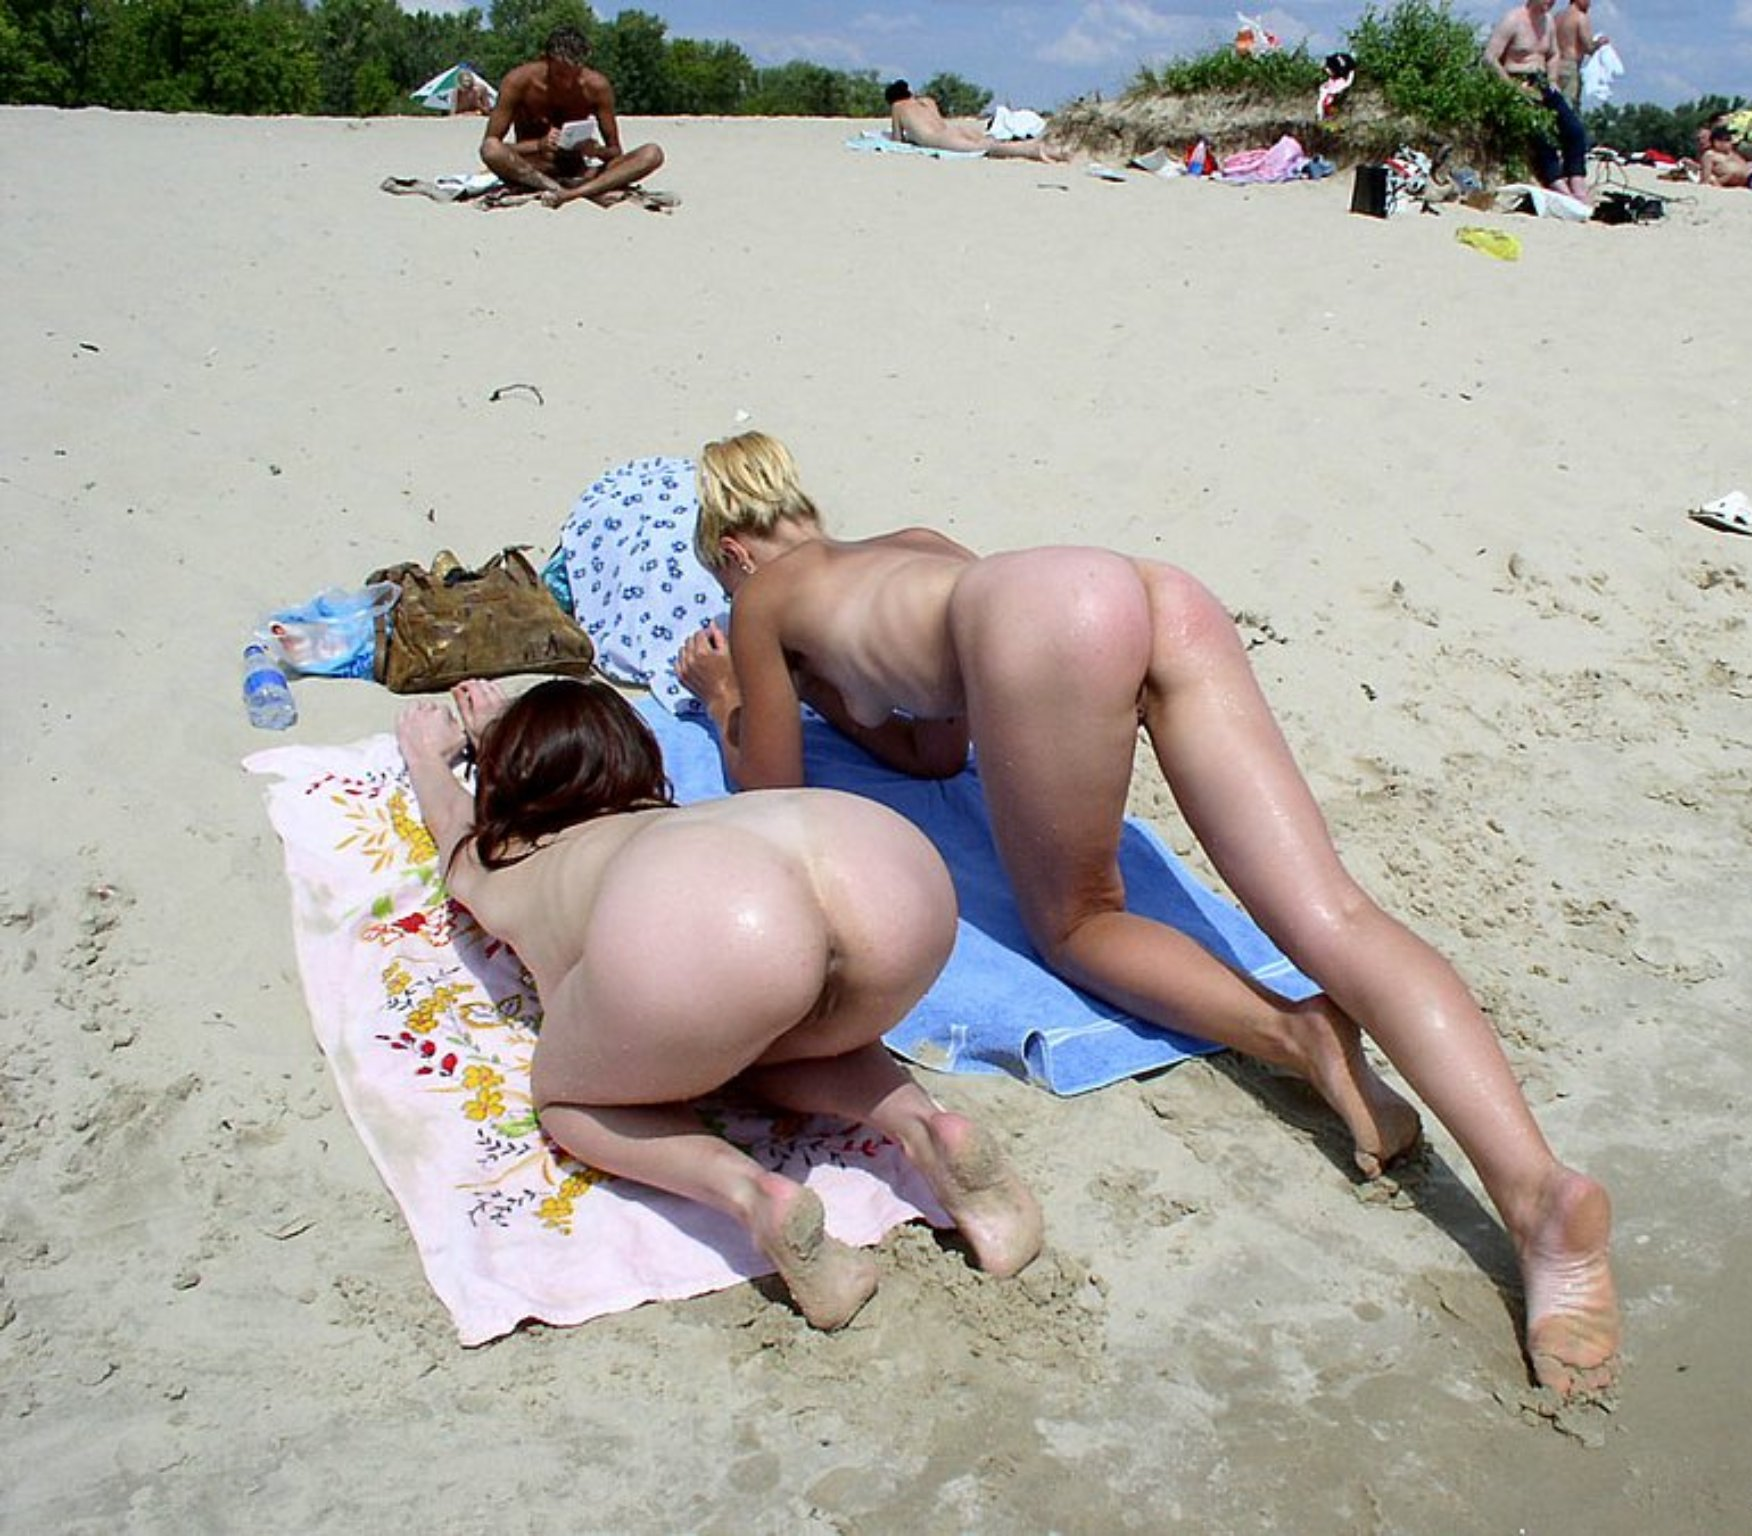 Two girls doggy style on a beach towel